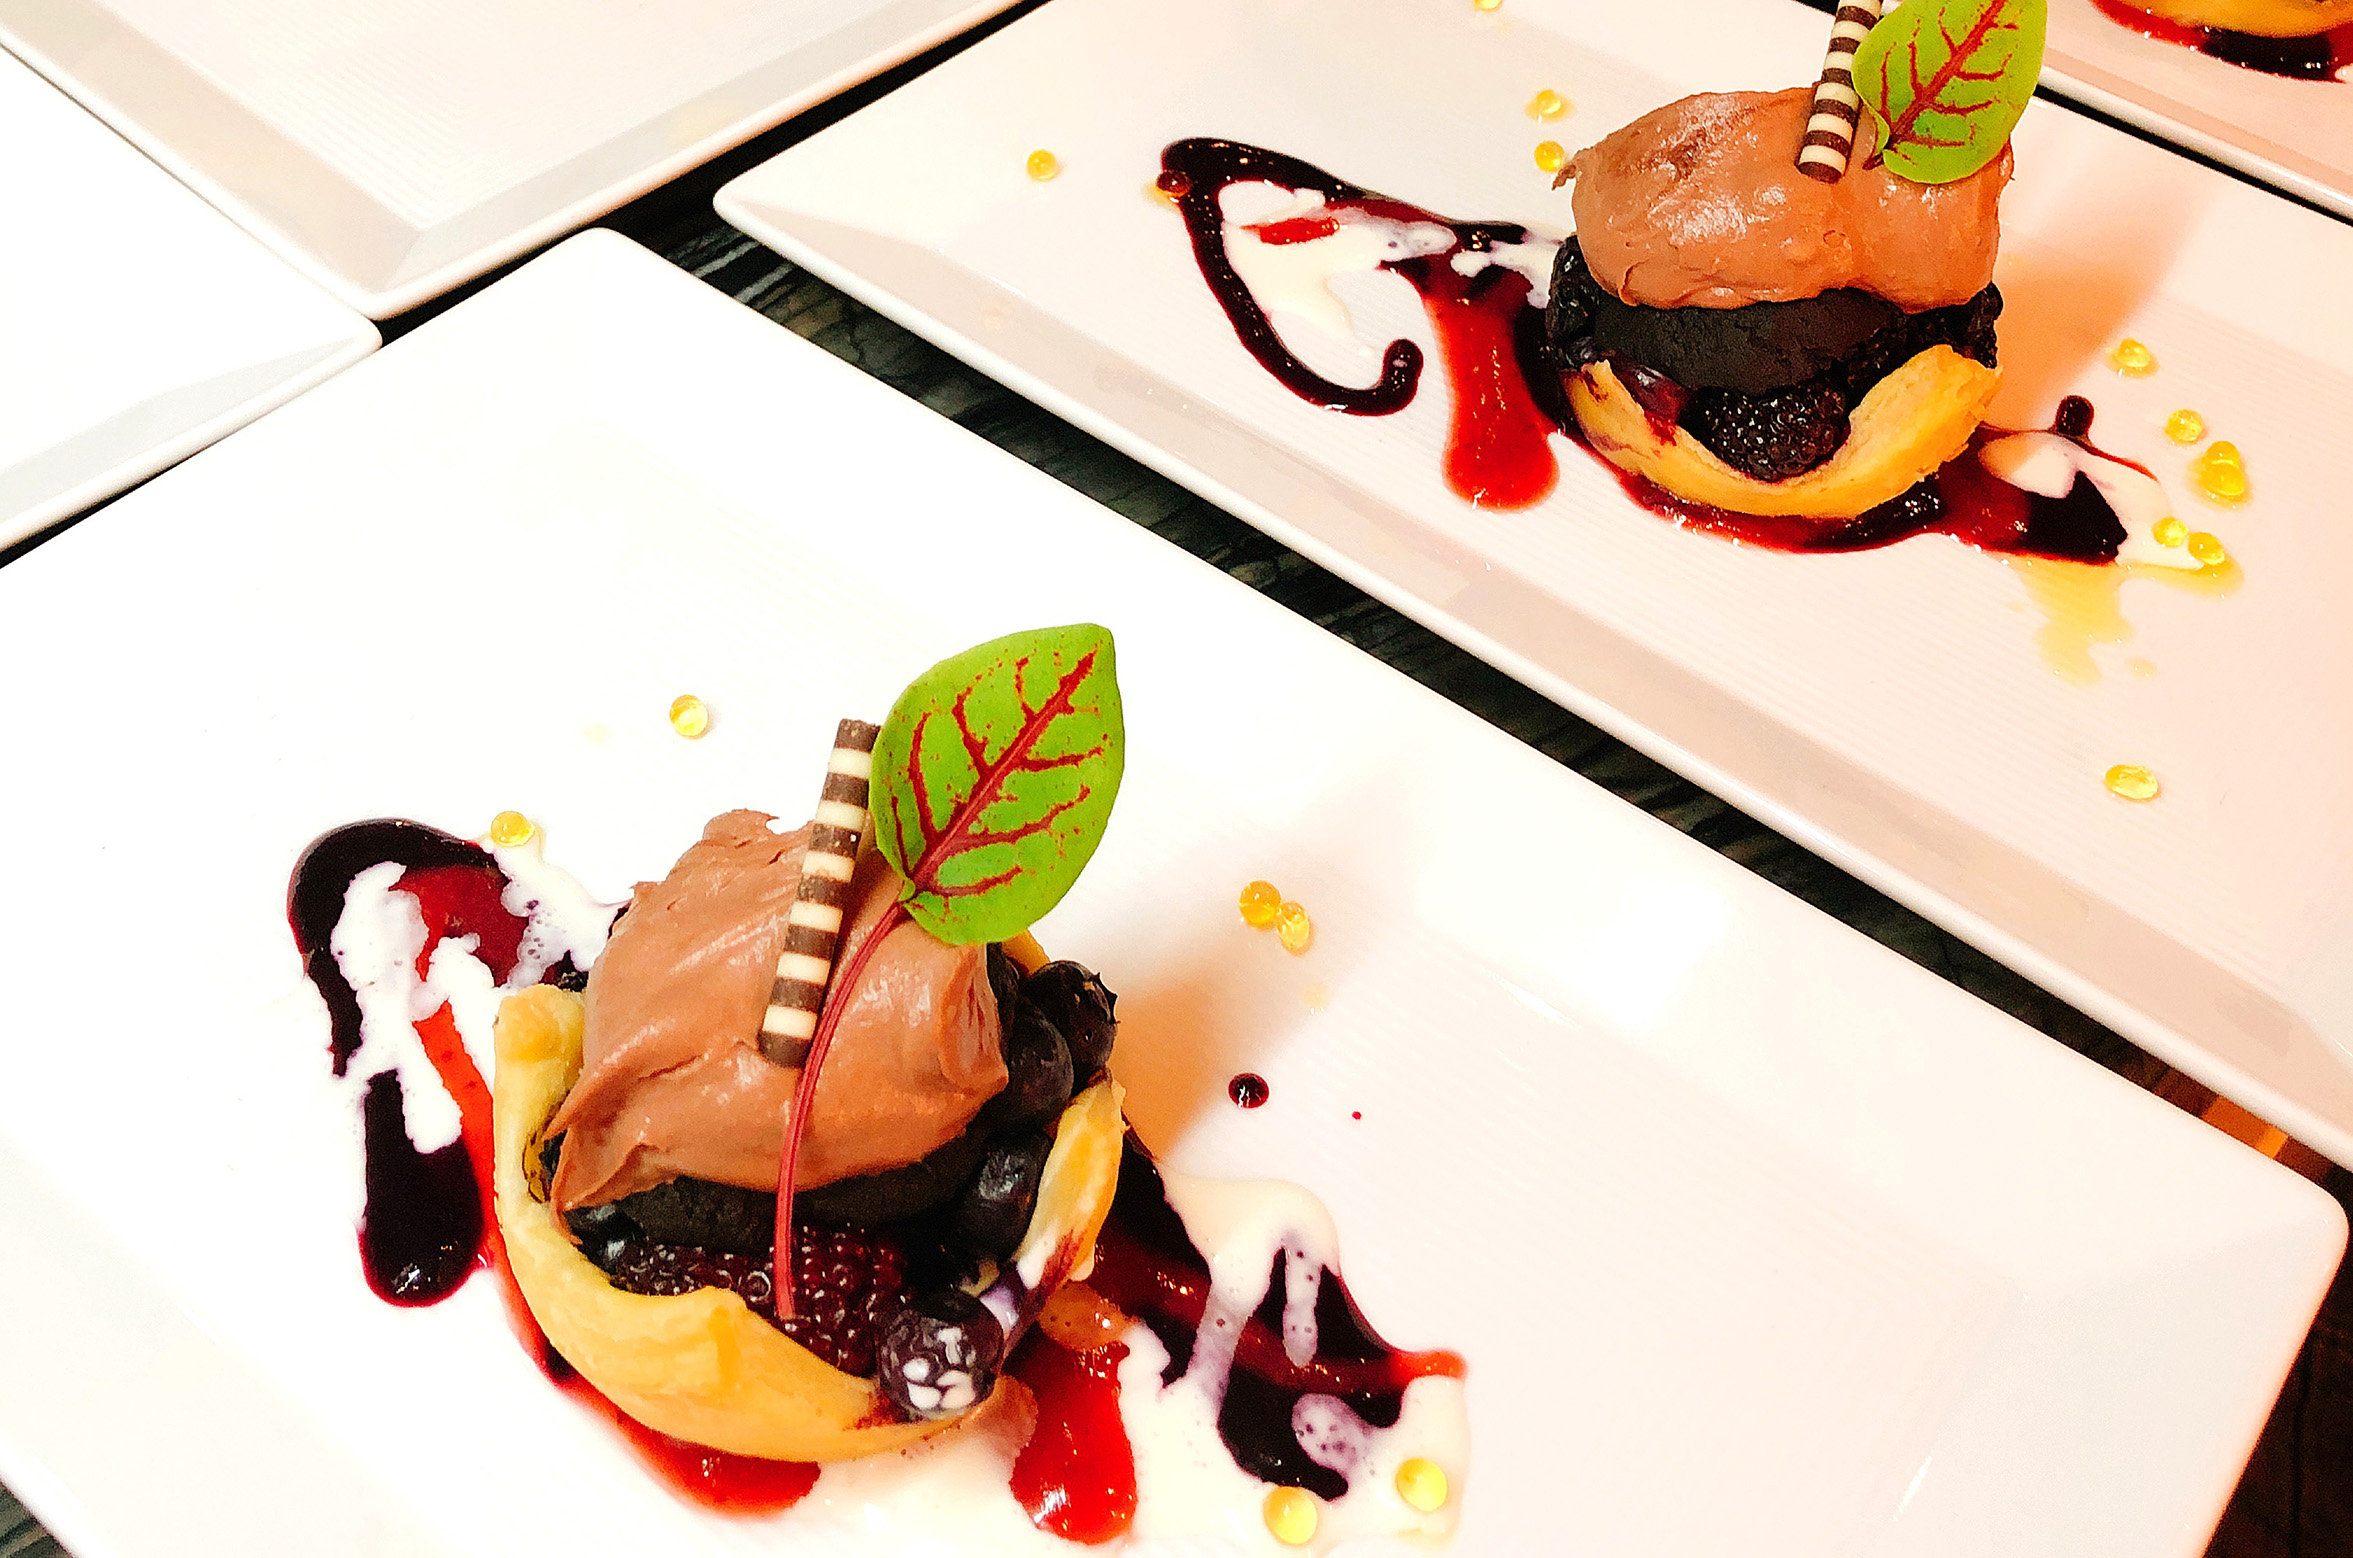 Culinary-Chocolate-Mousse-Chef-Tasia-Haag8.jpg